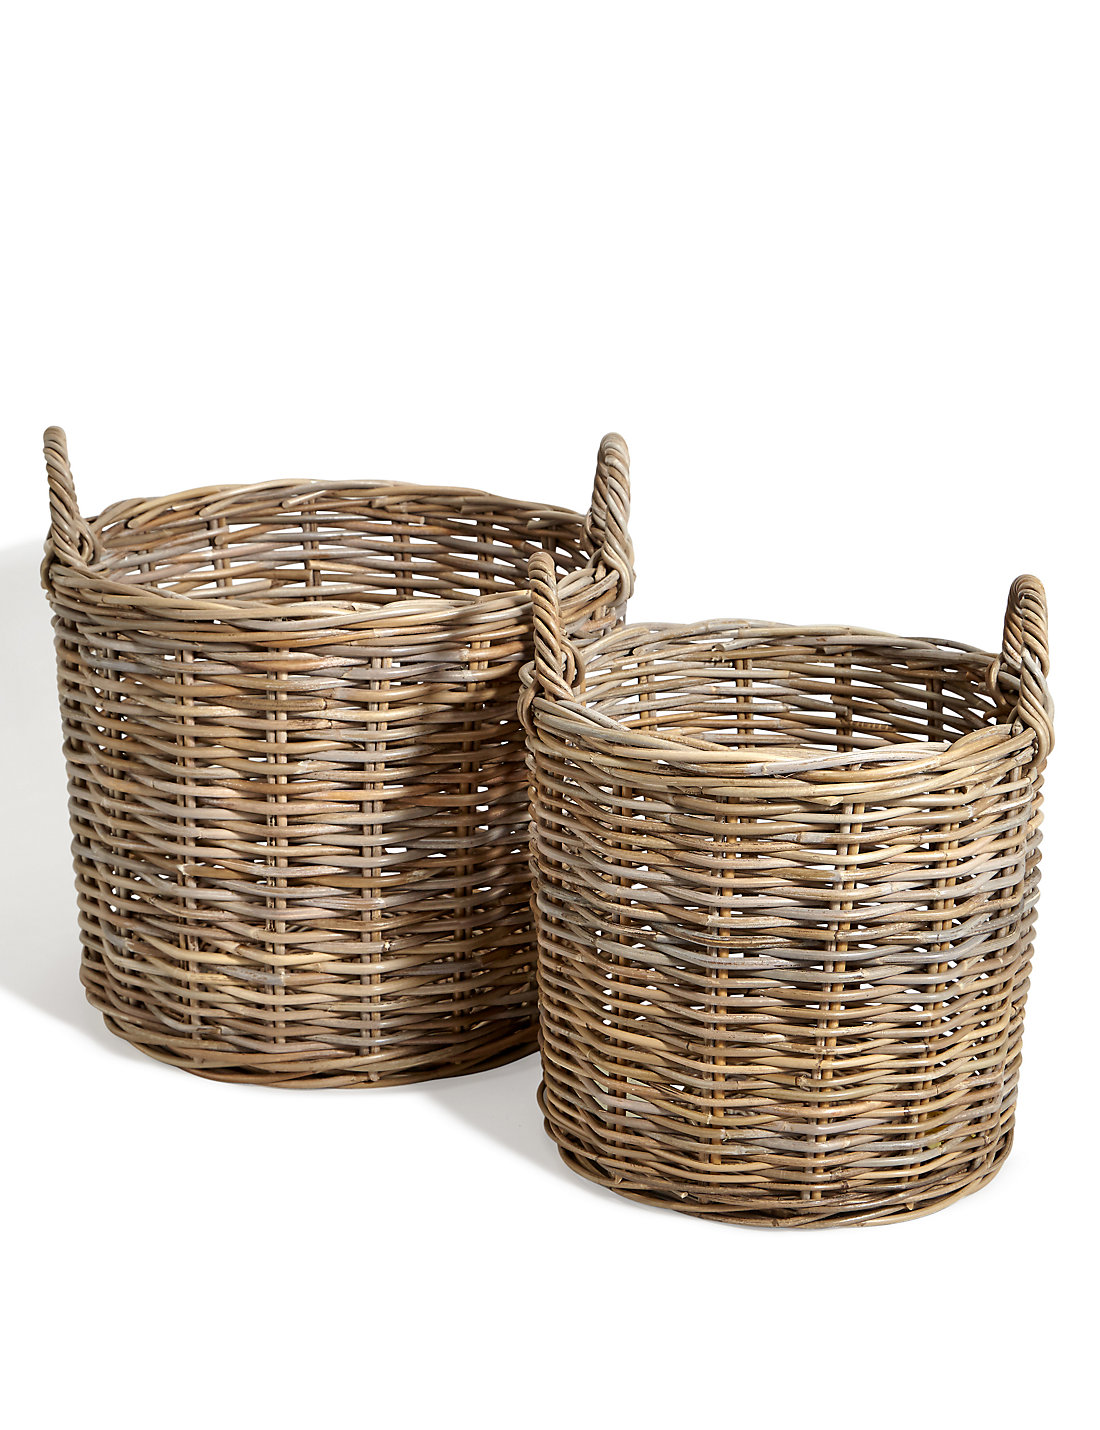 Set Of 2 Round Baskets £45.00 at M&S